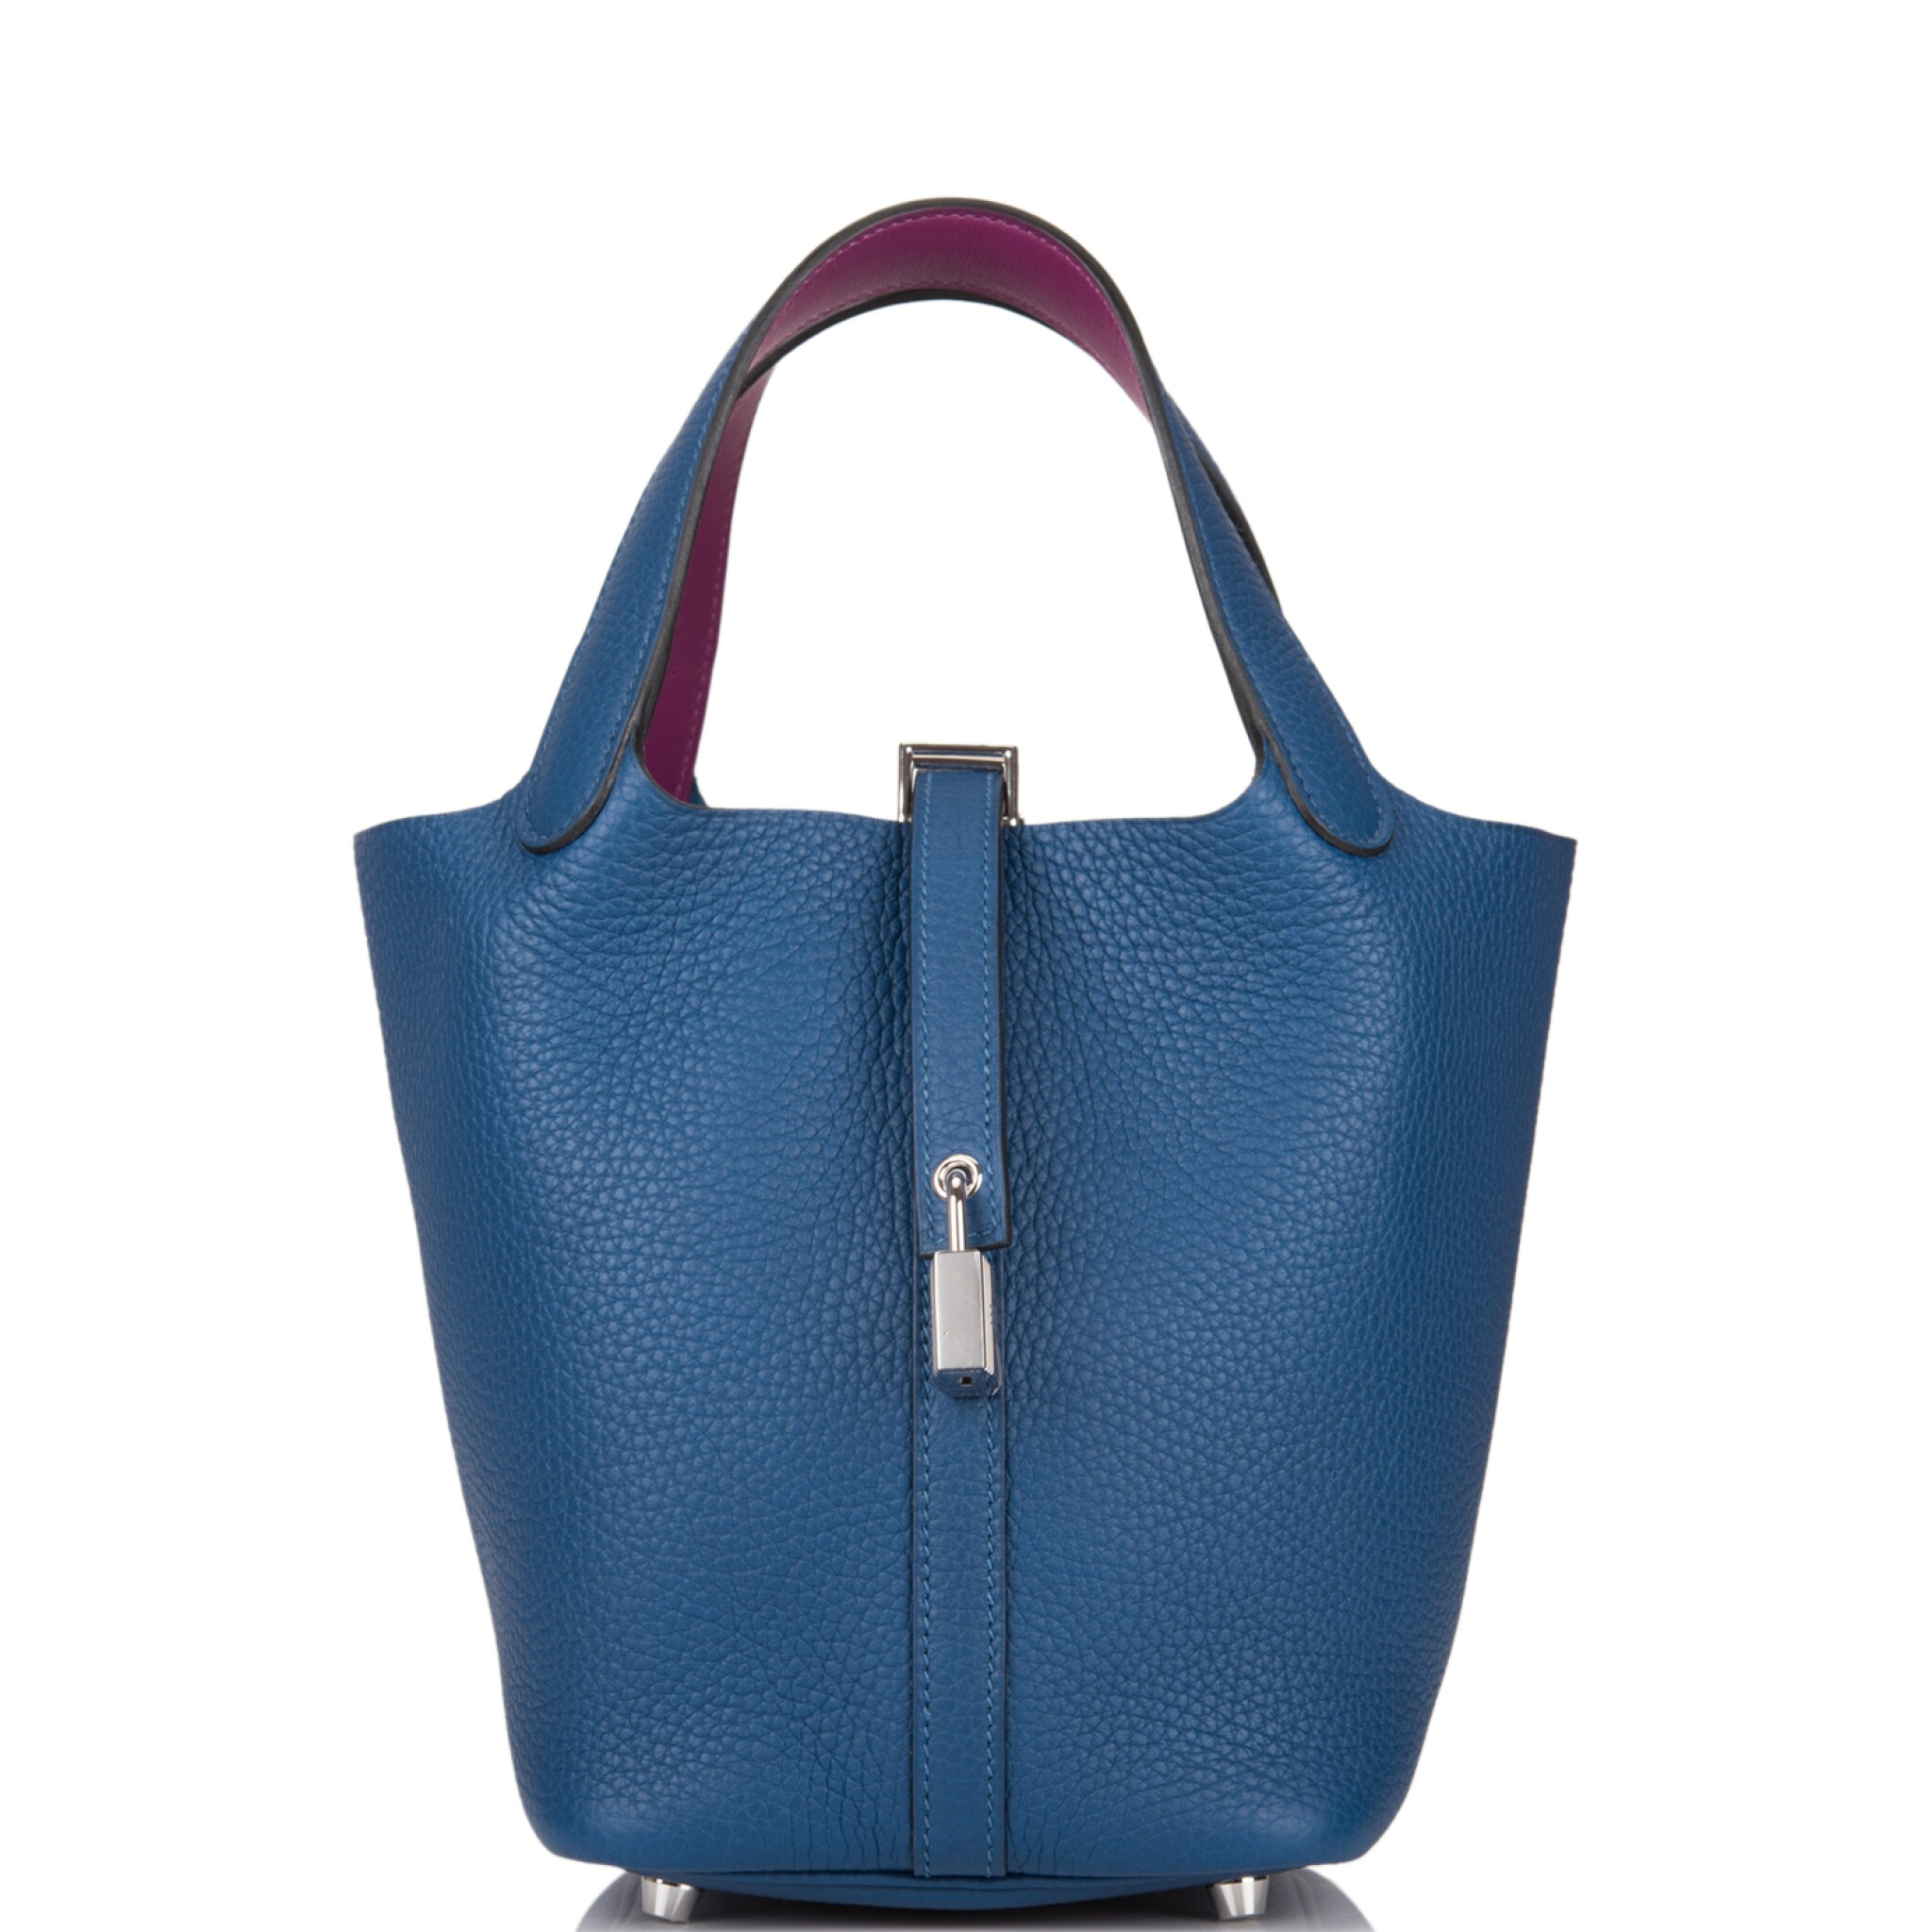 View full screen - View 1 of Lot 8. Hermès Deep Blue and Anemone Picotin Lock 18cm of Clemence Leather with Palladium Hardware.